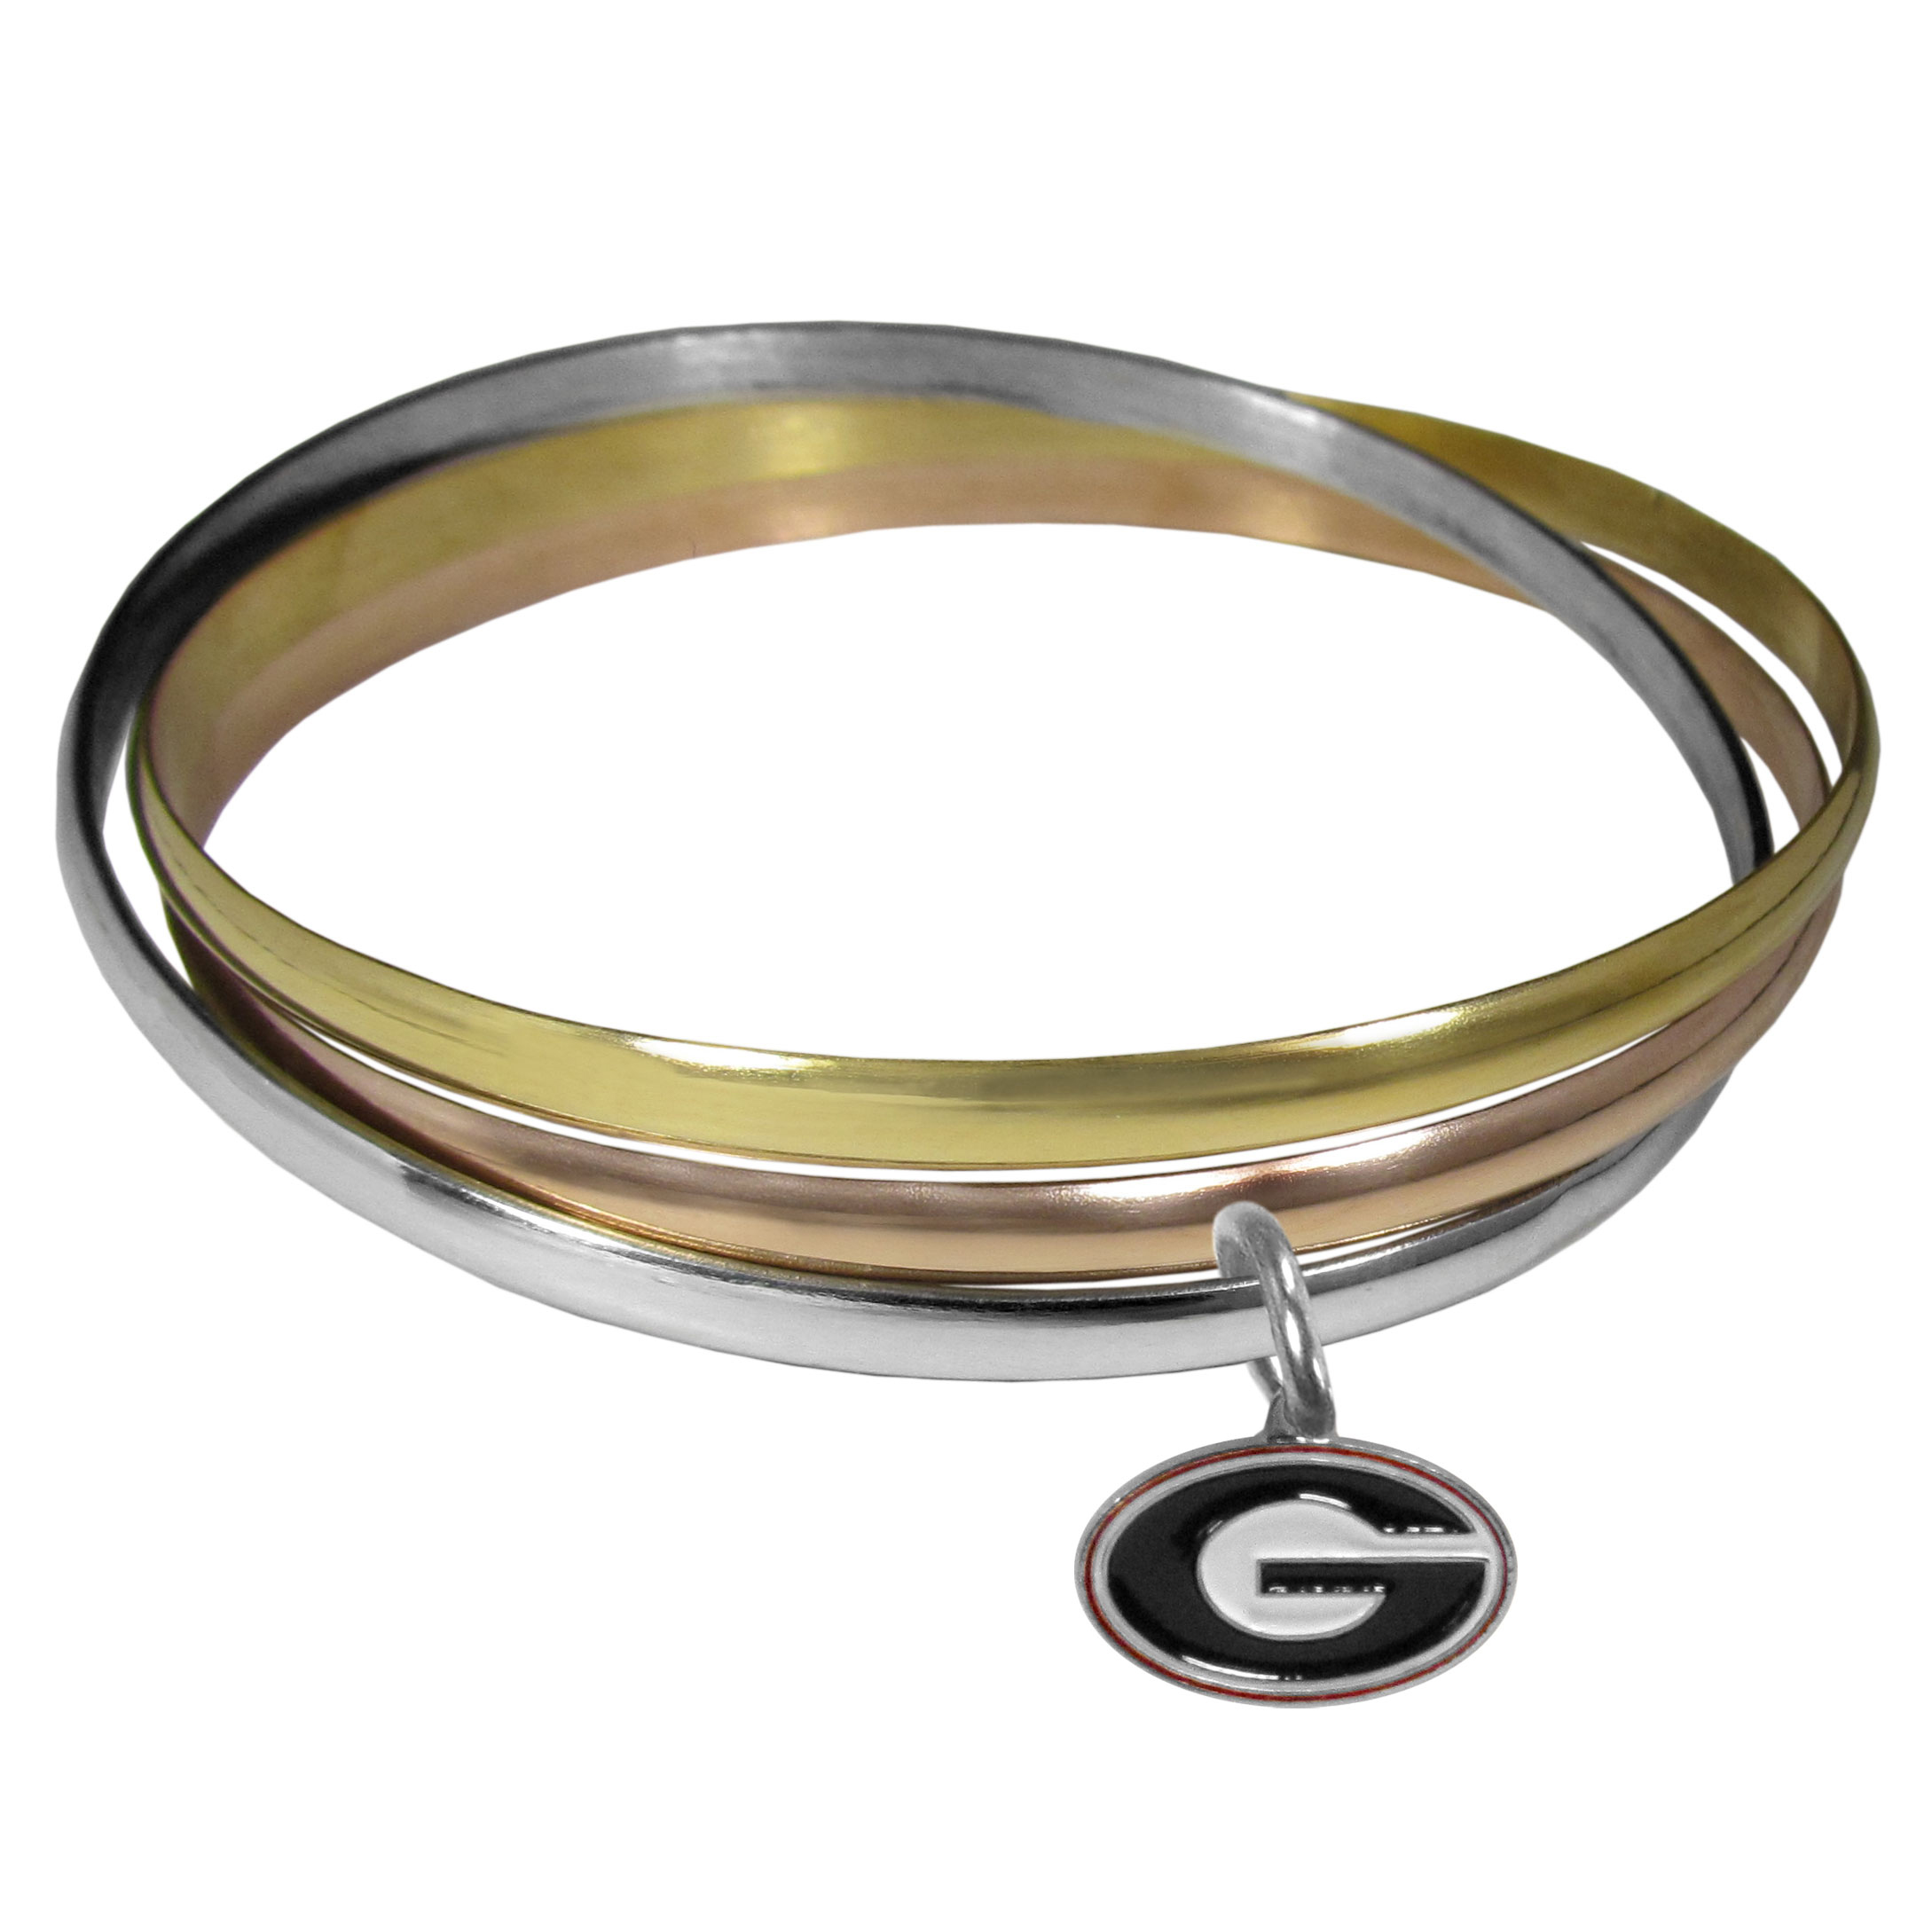 Georgia Bulldogs Tri-color Bangle Bracelet - These beautiful bangles come in a interlocking style and feature a fully cast Georgia Bulldogs charm with enameled team colors. The bracelet has a silver toned bangle, gold tone bangle and brass toned bangle.